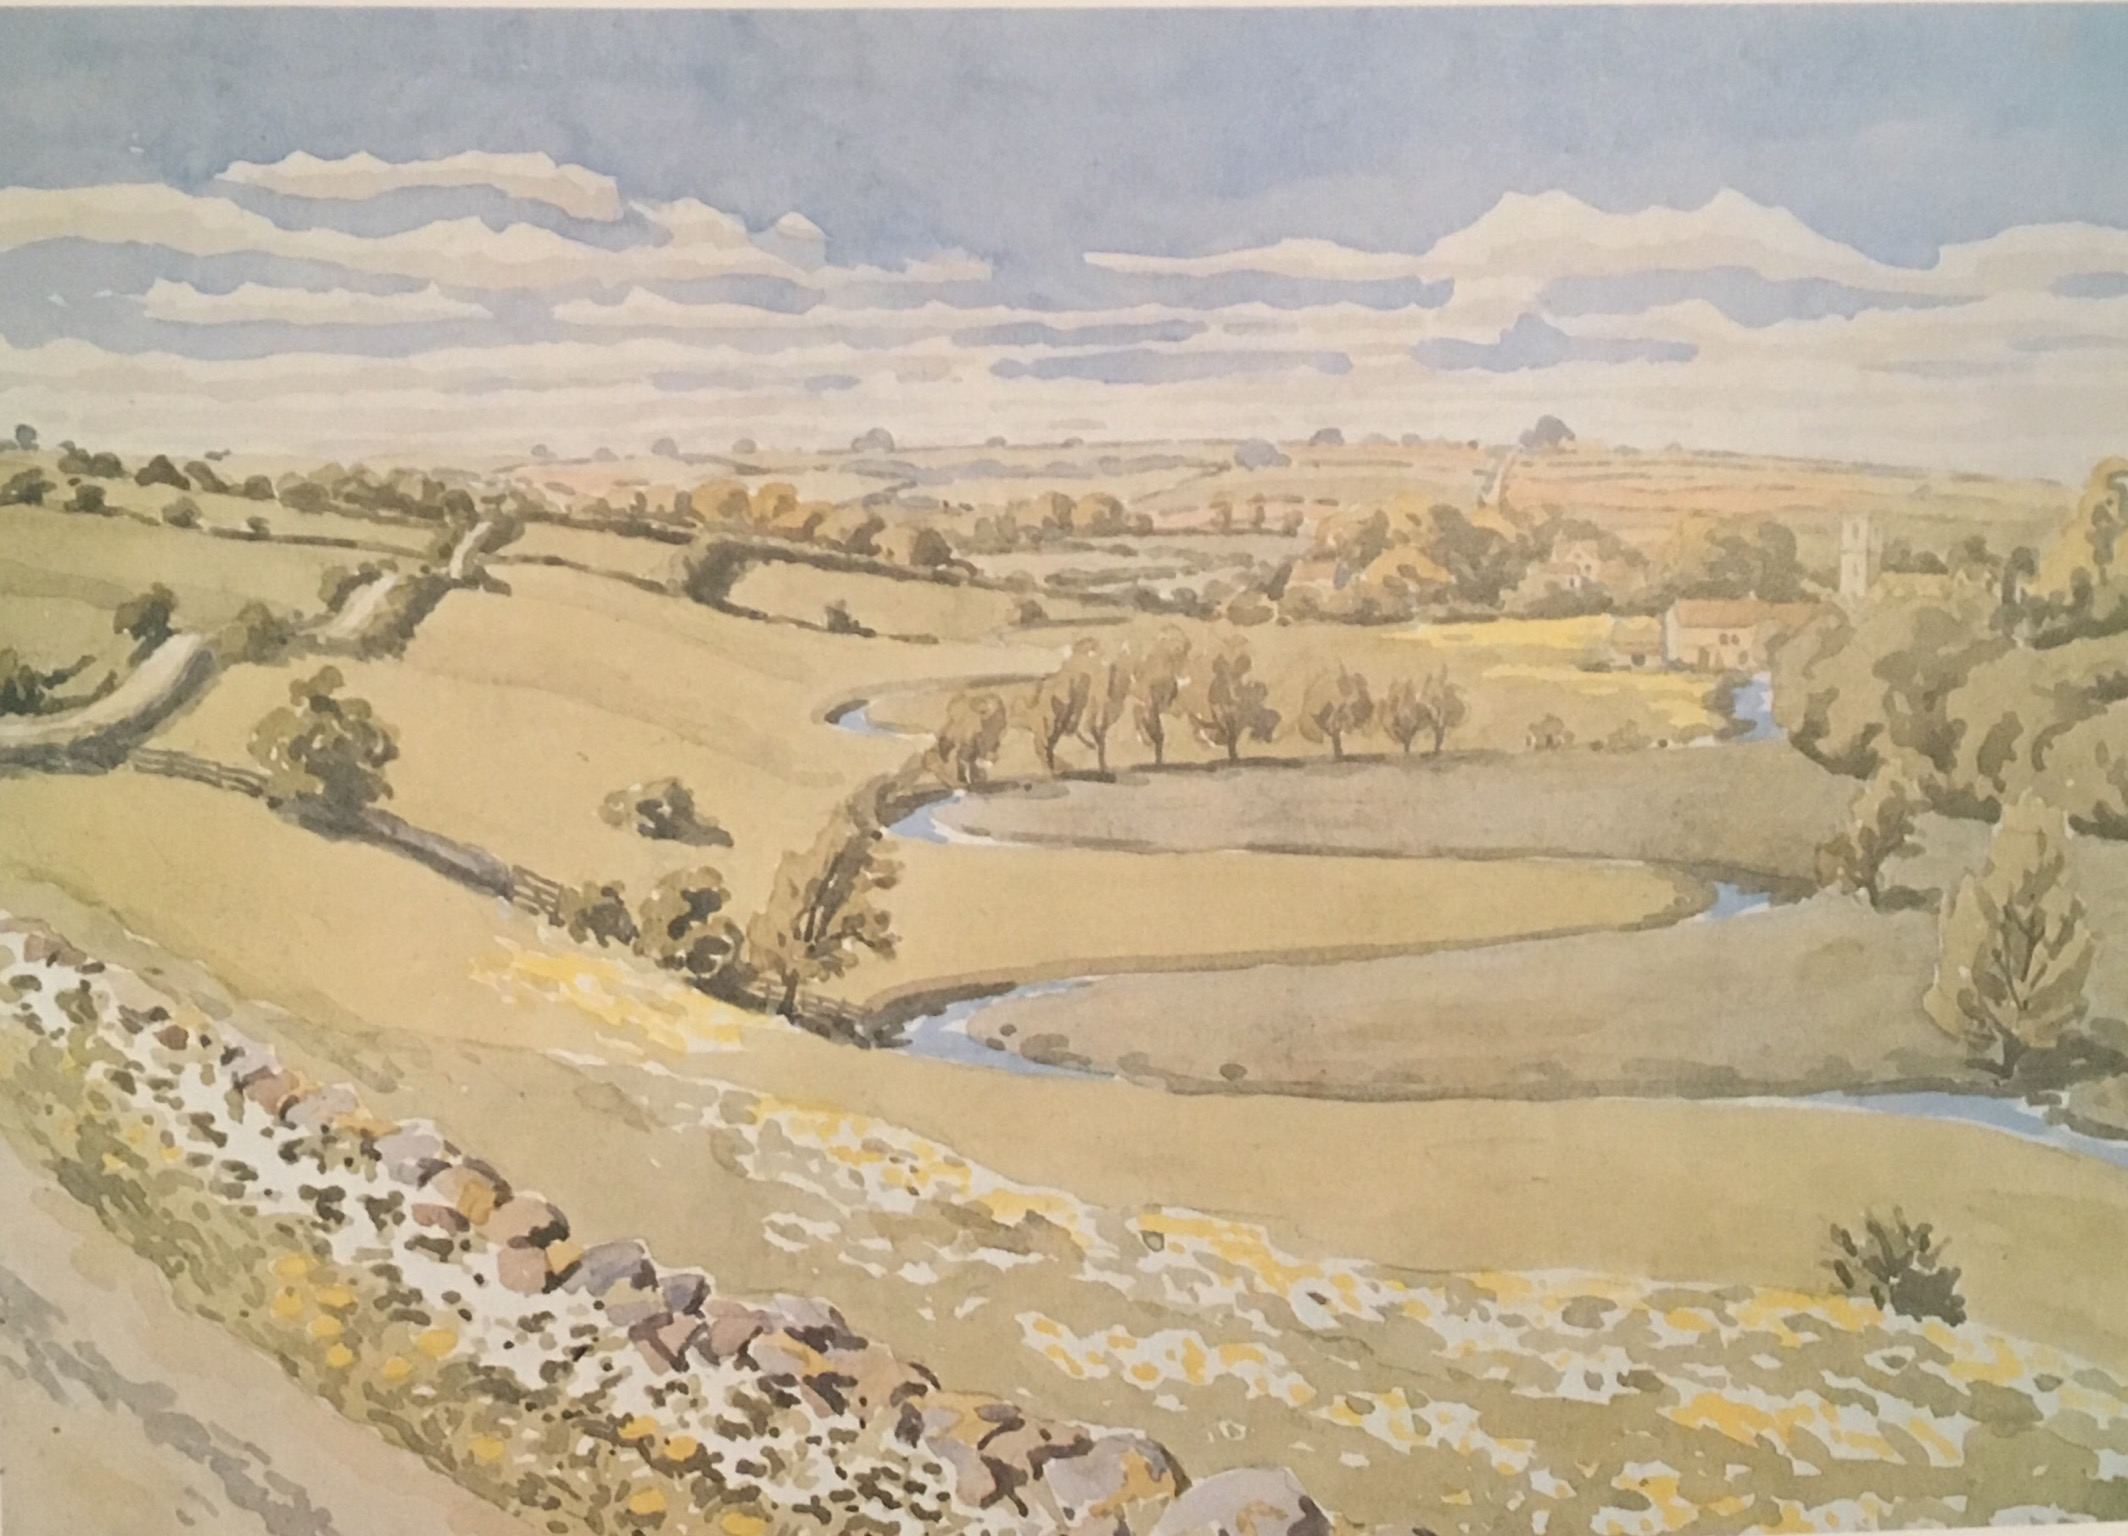 The Windrush Valley by Sir Alister Hardy 1945